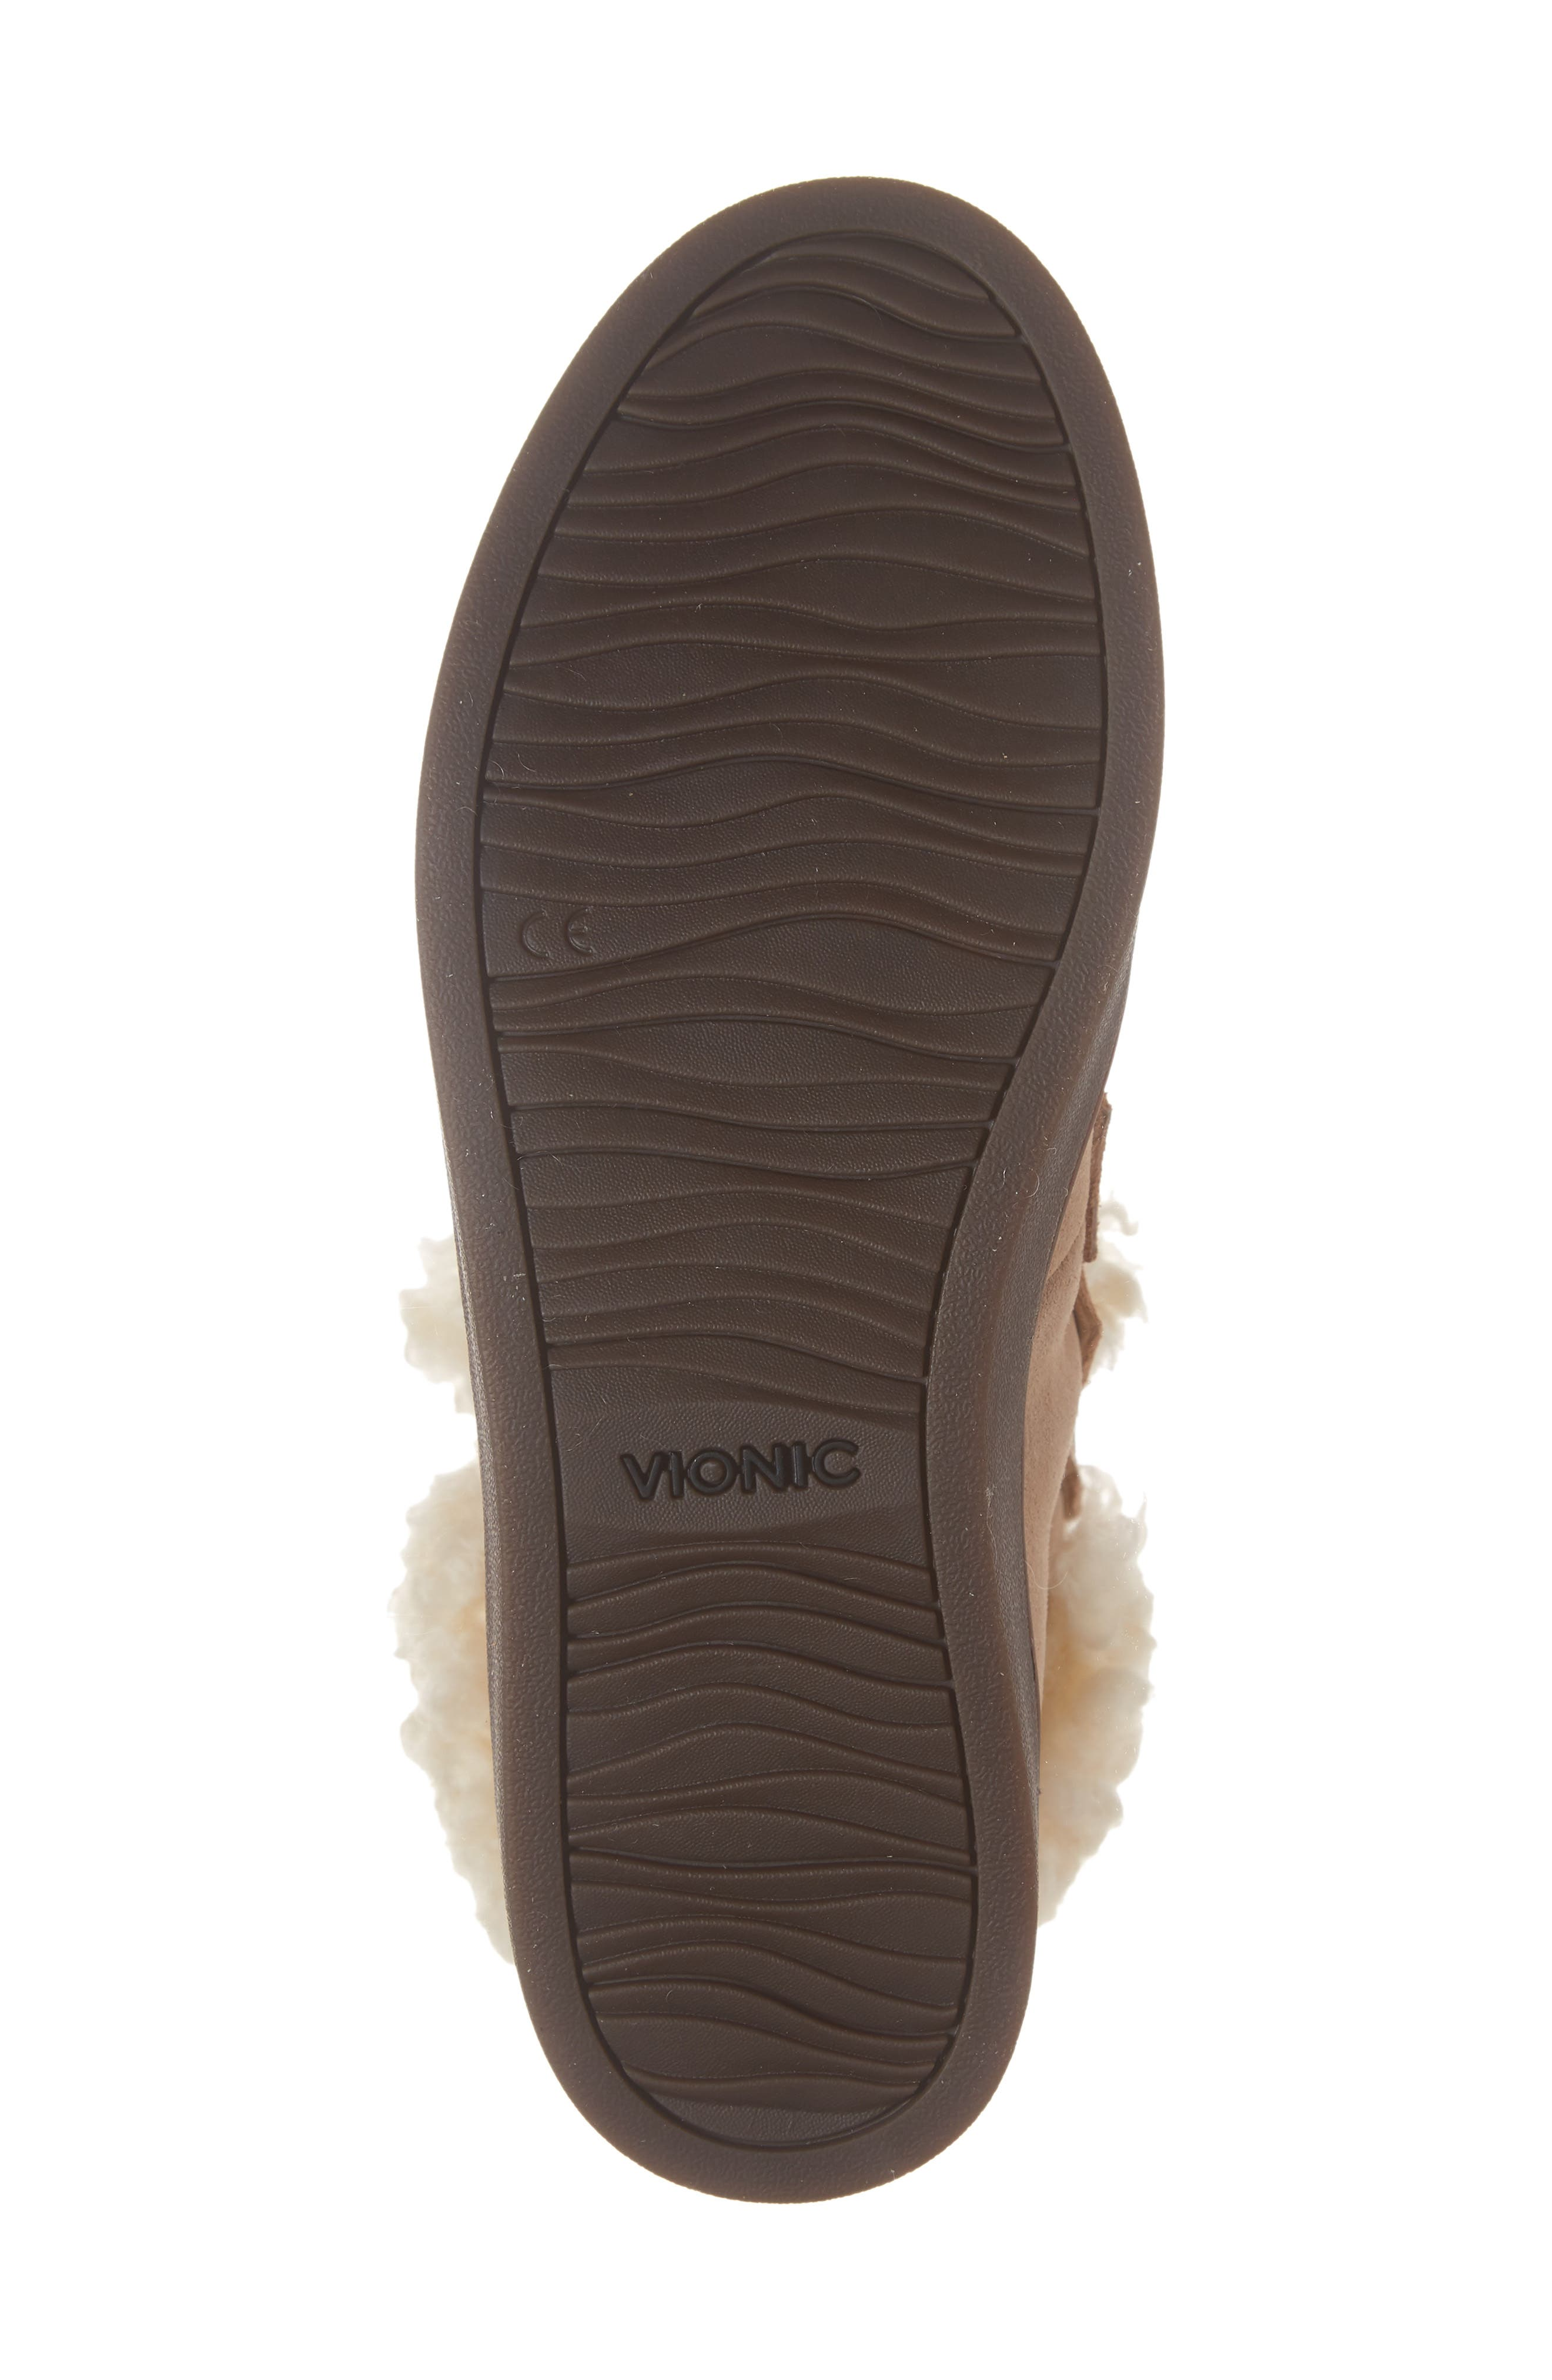 Oak Genuine Shearling Cuff Sneaker Bootie,                             Alternate thumbnail 6, color,                             SAND SUEDE